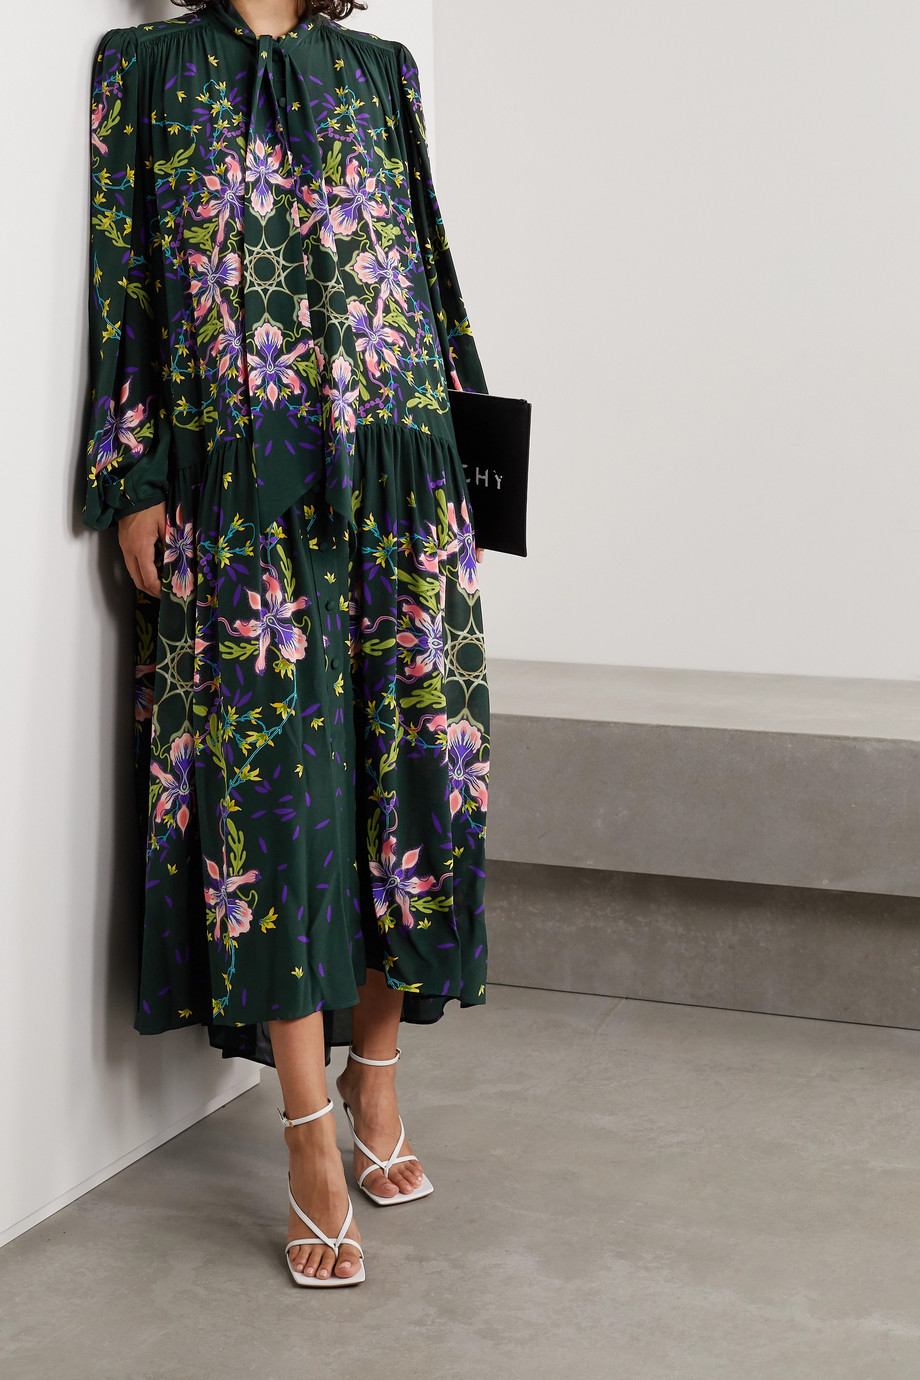 Givenchy Pussy-bow floral-print silk crepe de chine gown